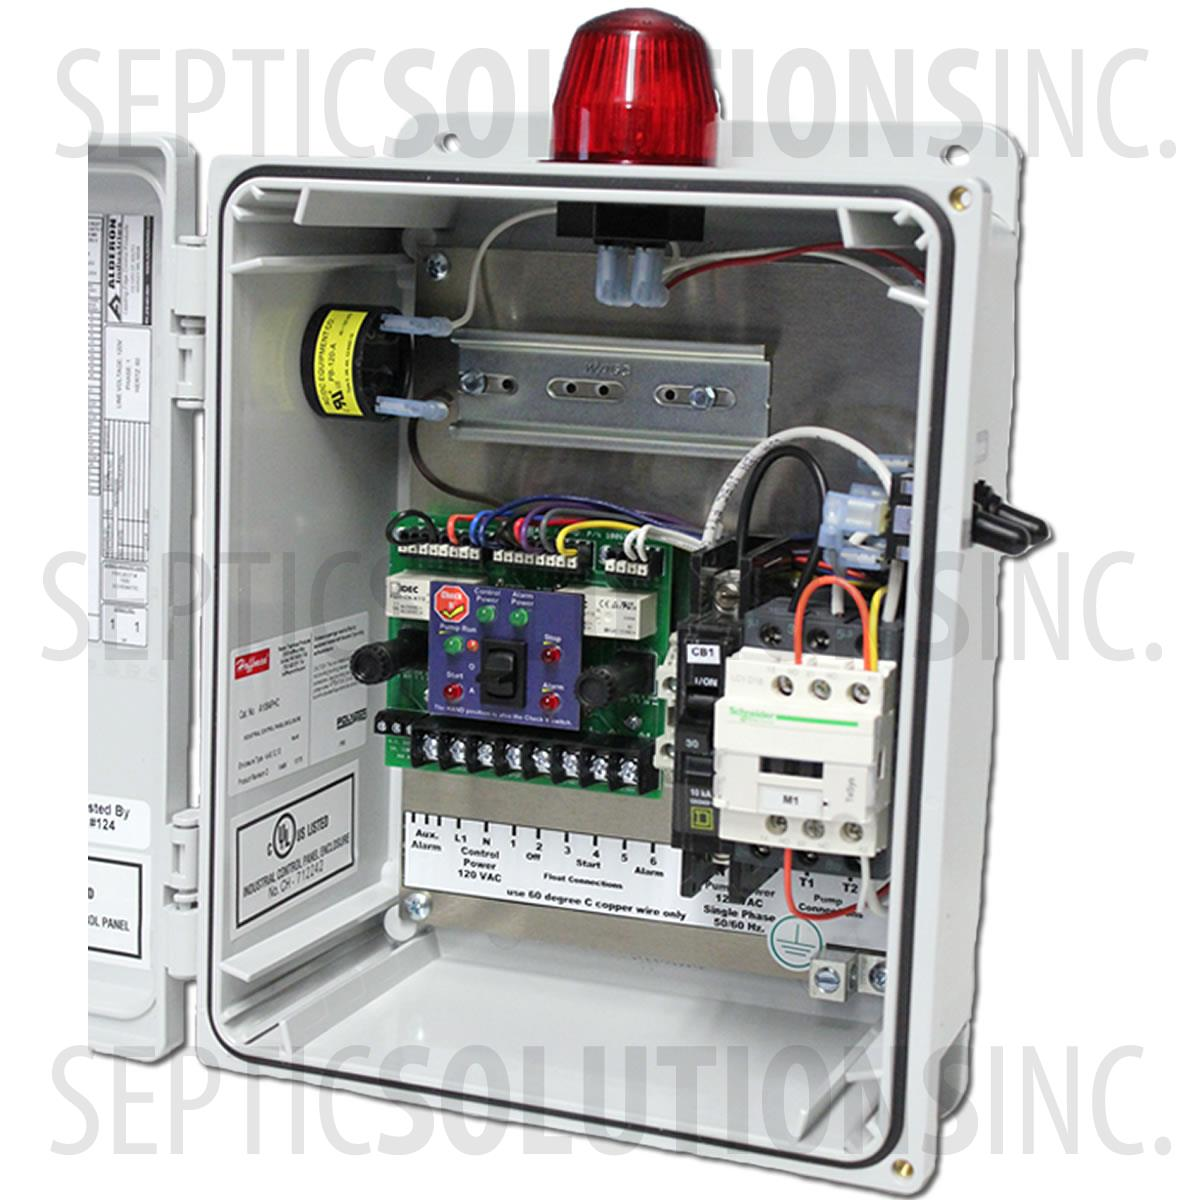 Jet Control Panel Wiring Diagram - Residential Electrical Symbols •